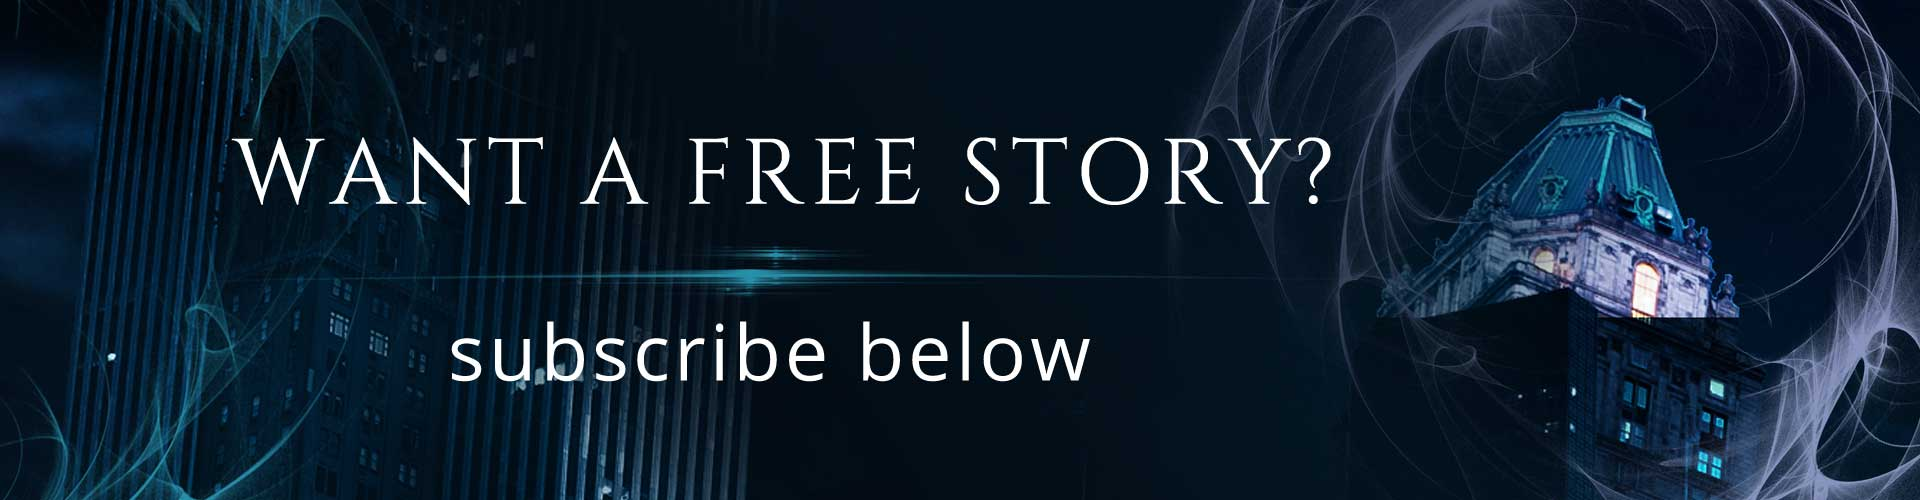 Want a free story?